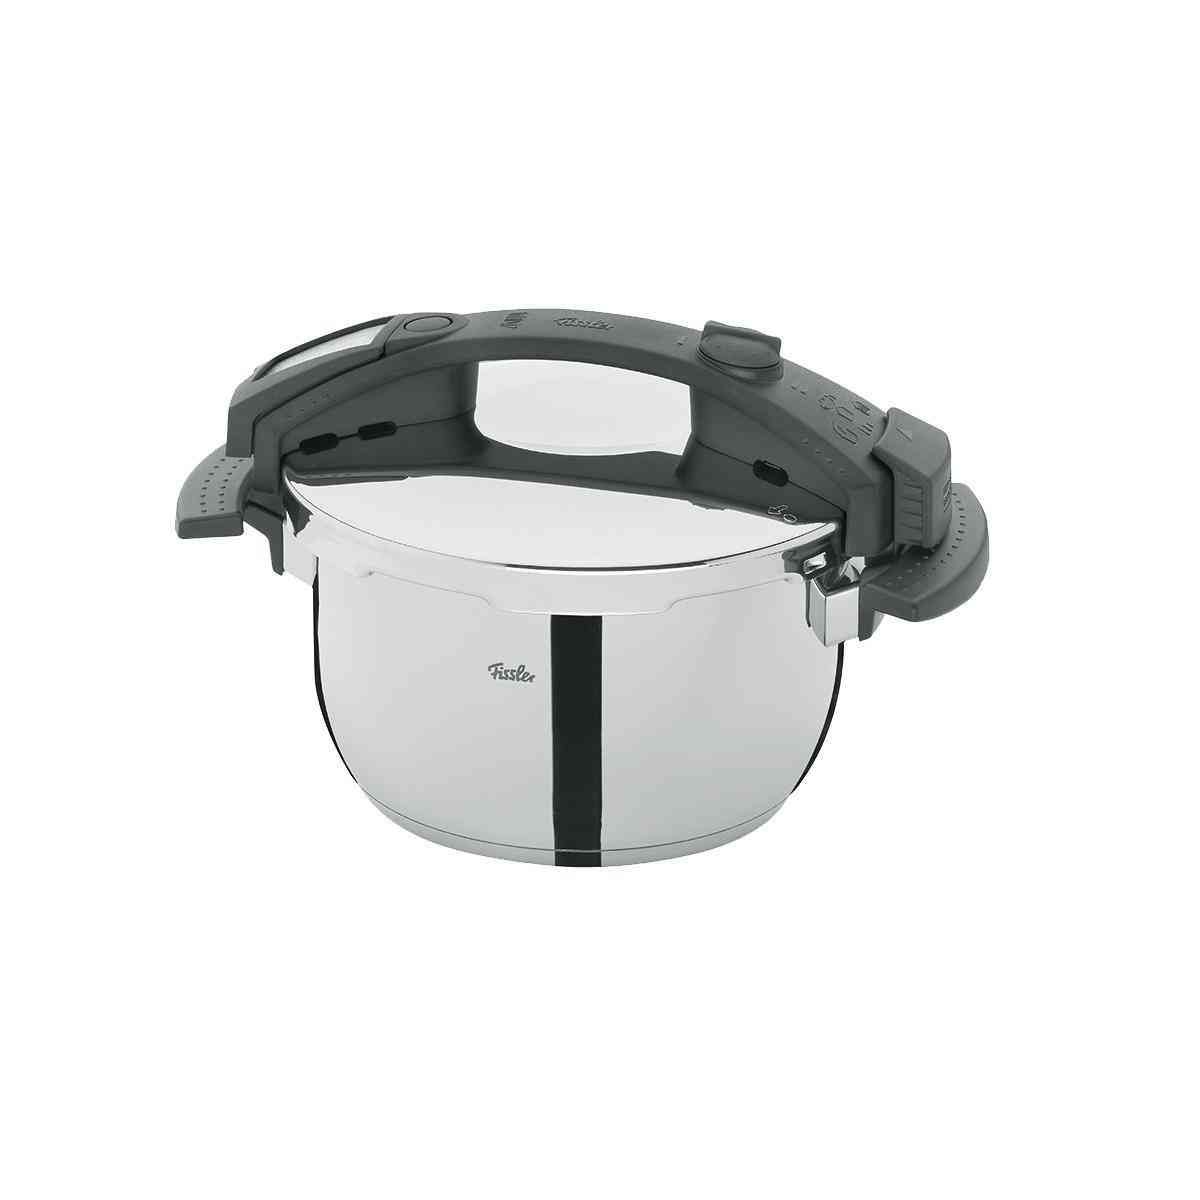 magic comfort basic pressure cooker